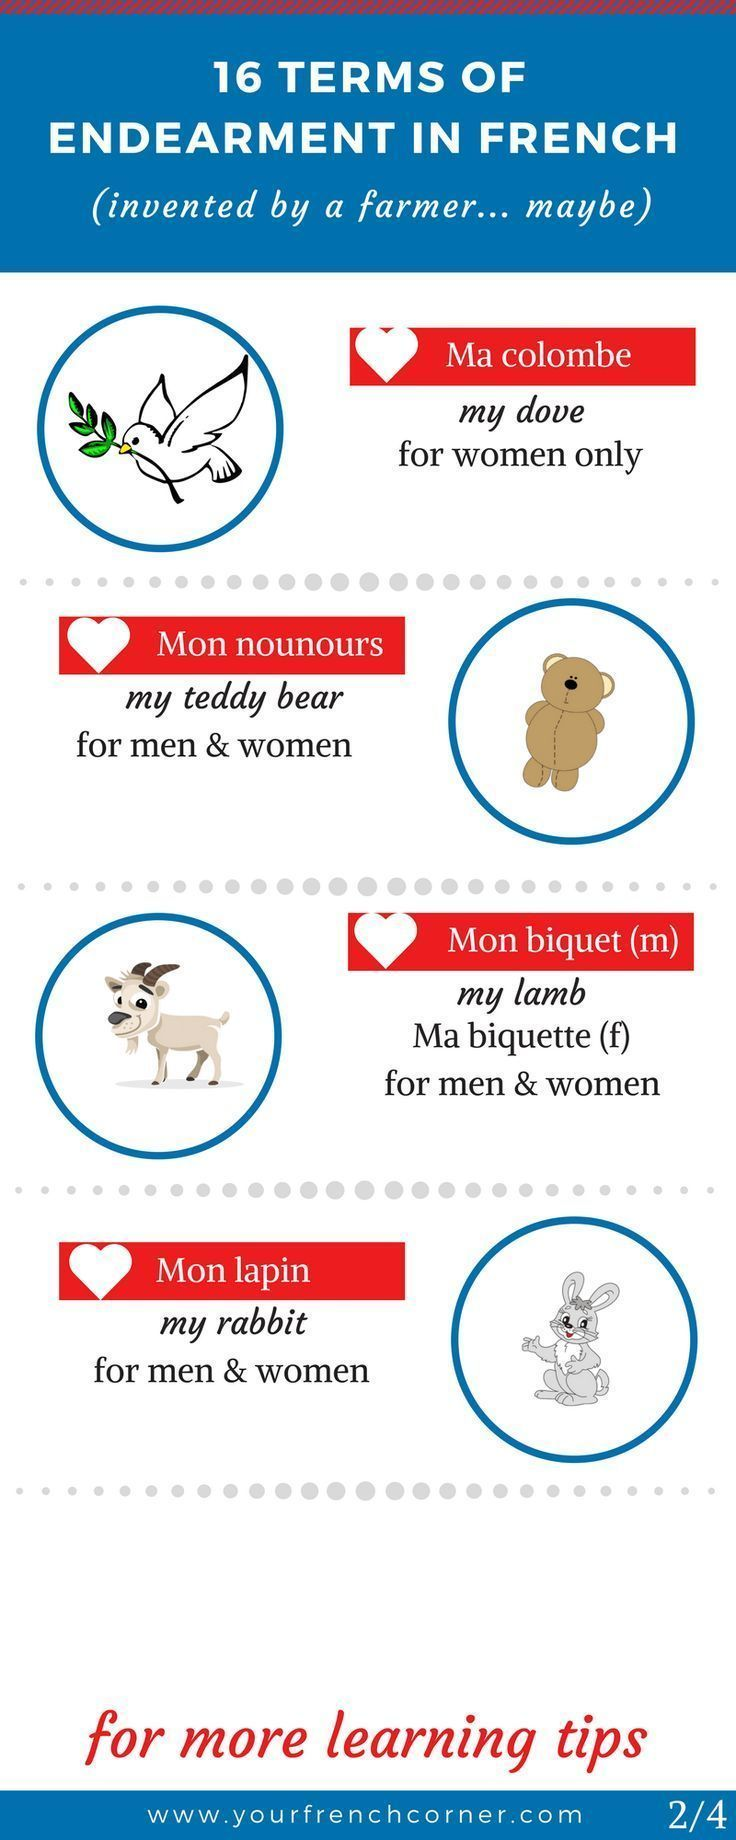 16 Unusual Endearment Terms In French (invented by a farmer… maybe